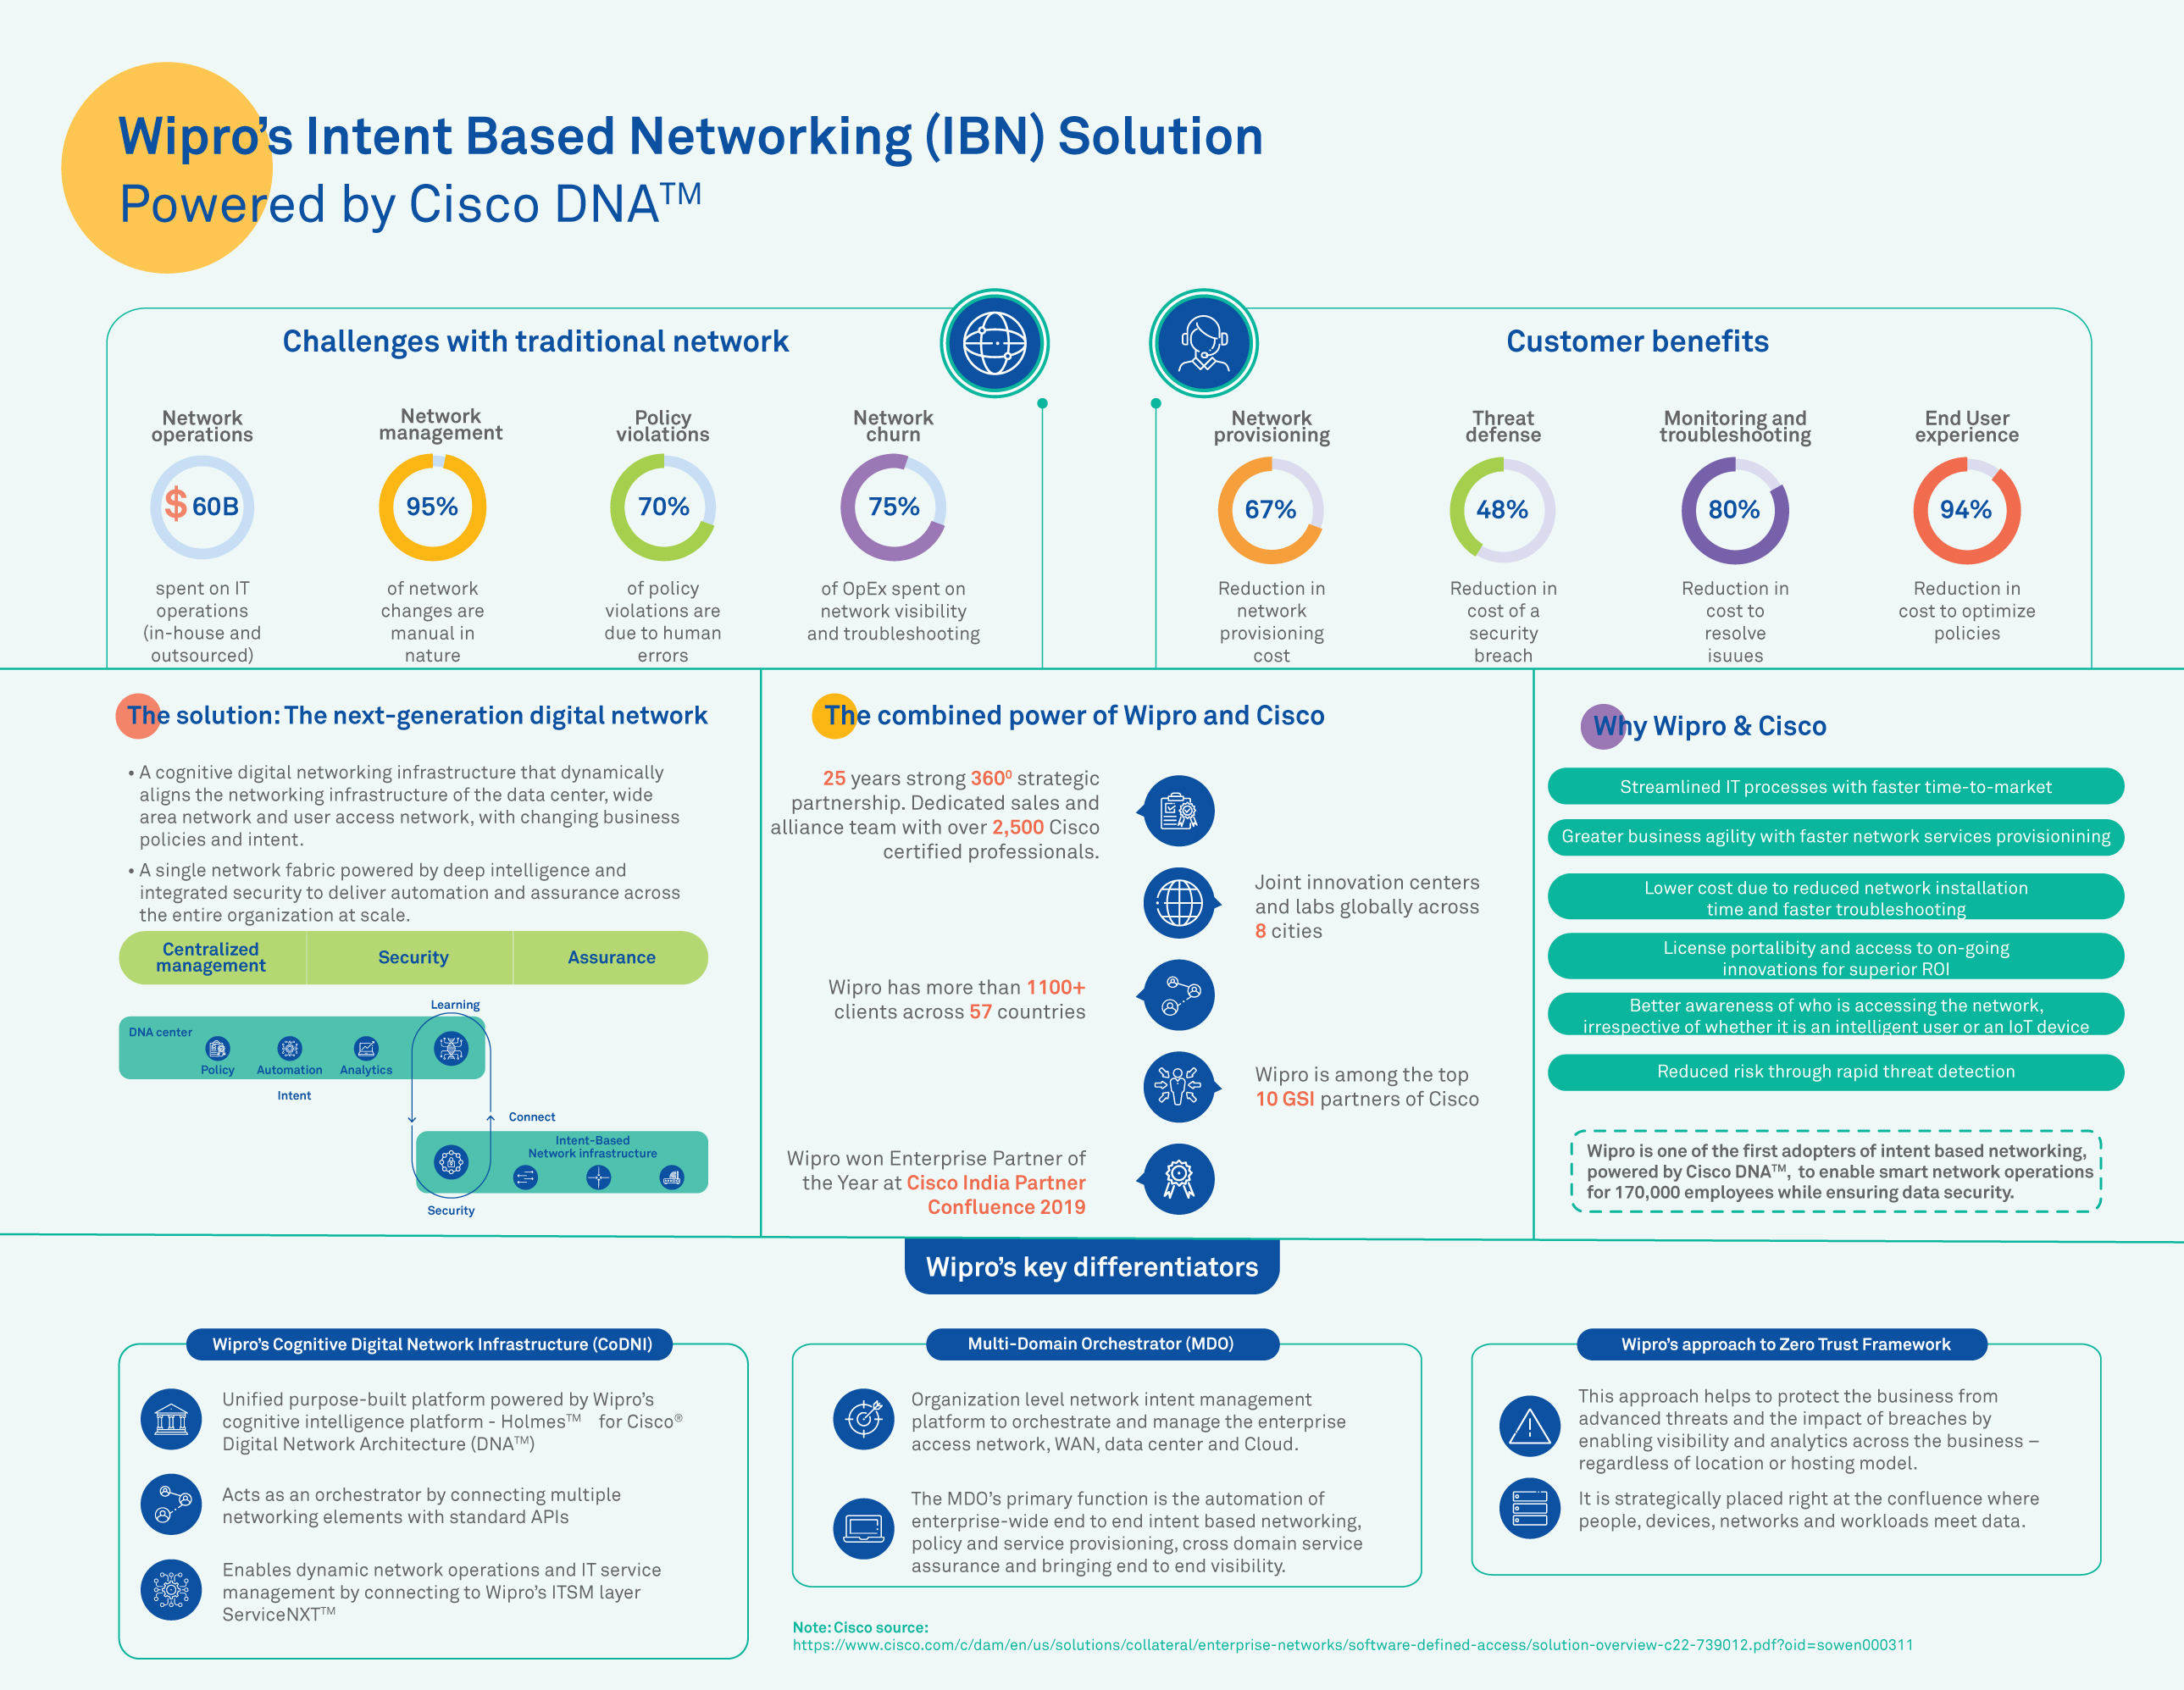 Wipro's Intent Based Networking